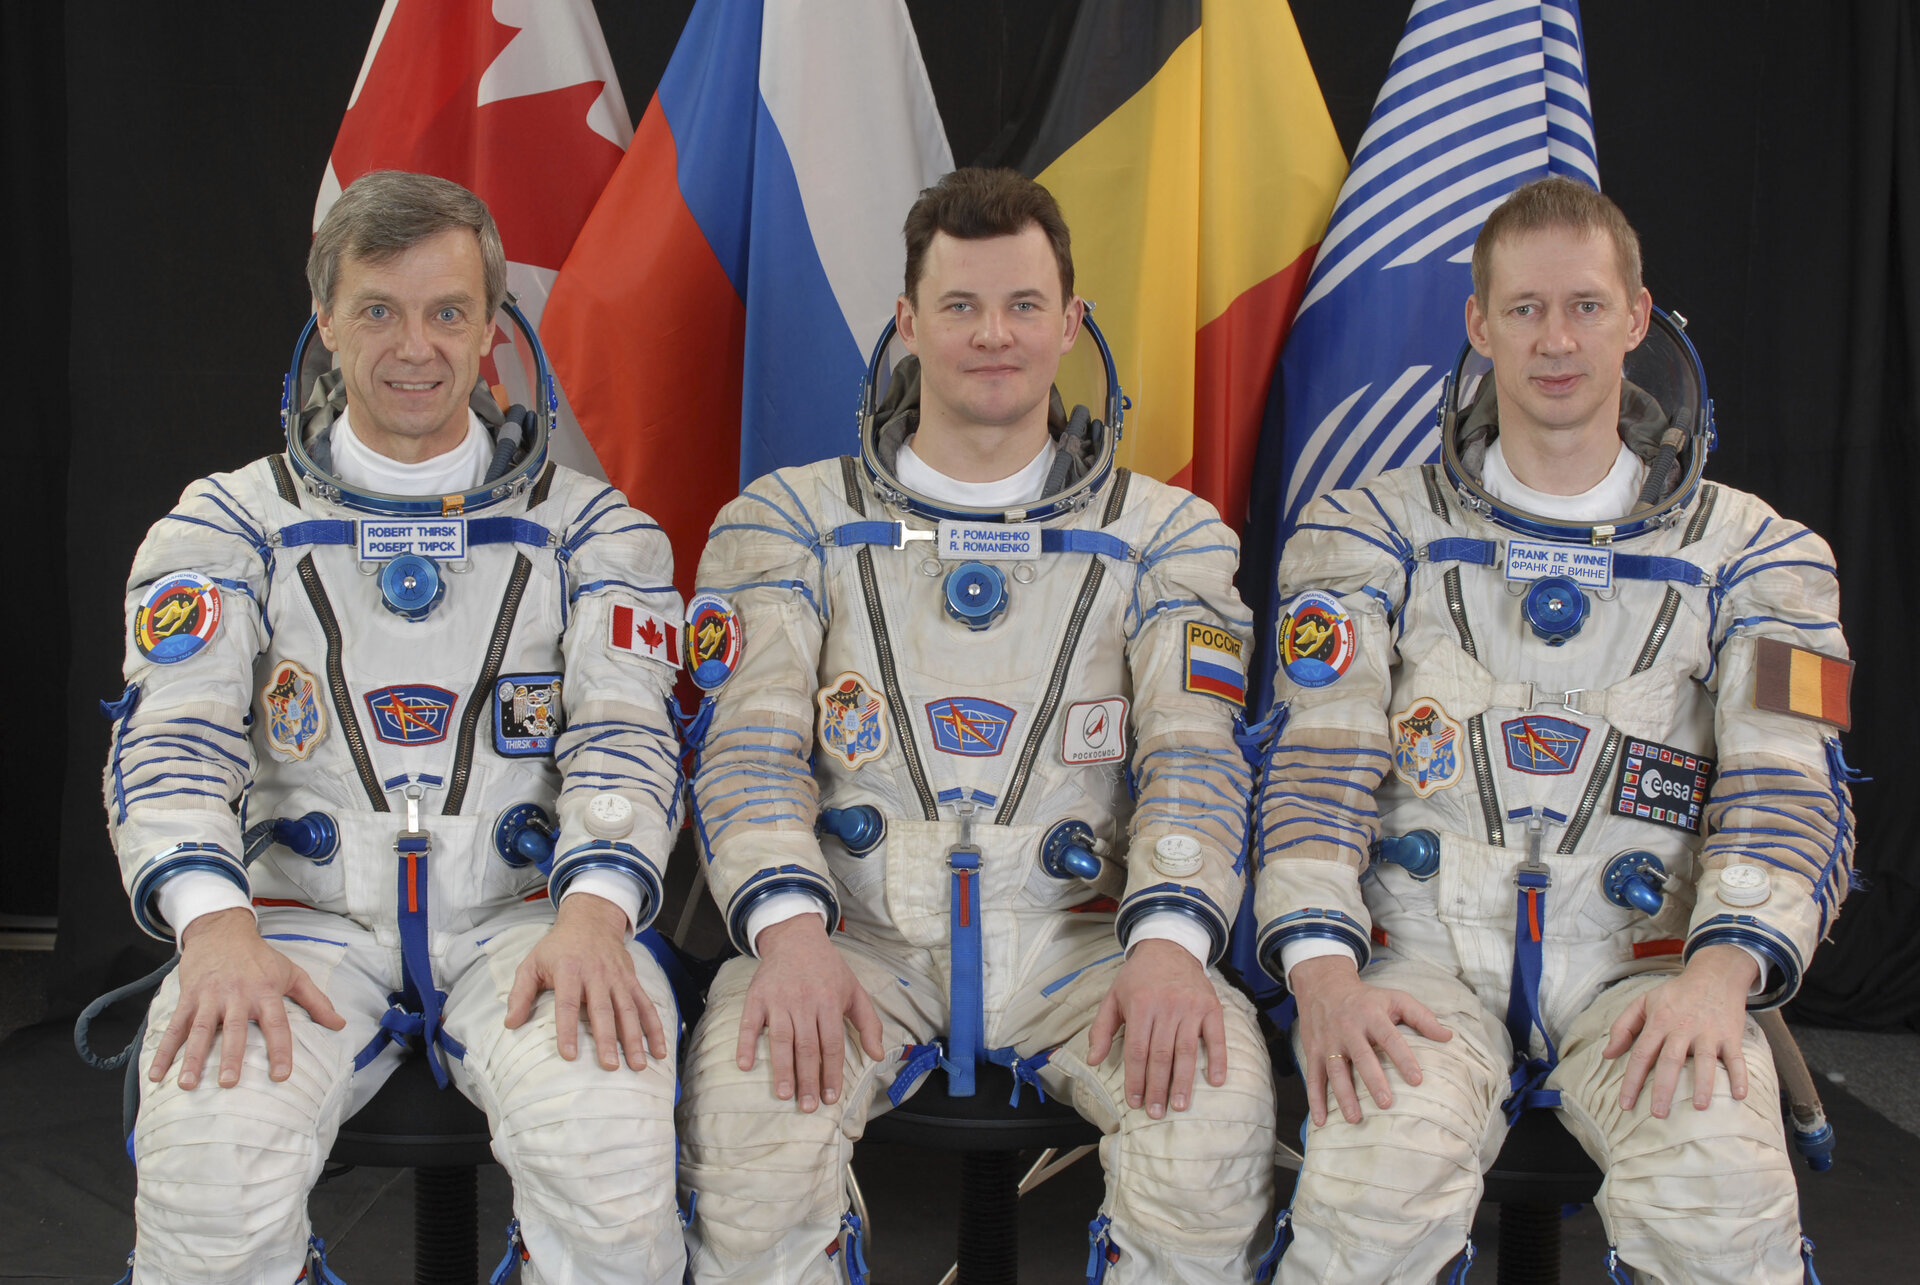 Frank De Winne with fellow ISS Expedition 20/21 crewmembers Robert Thirsk and Roman Romanenko